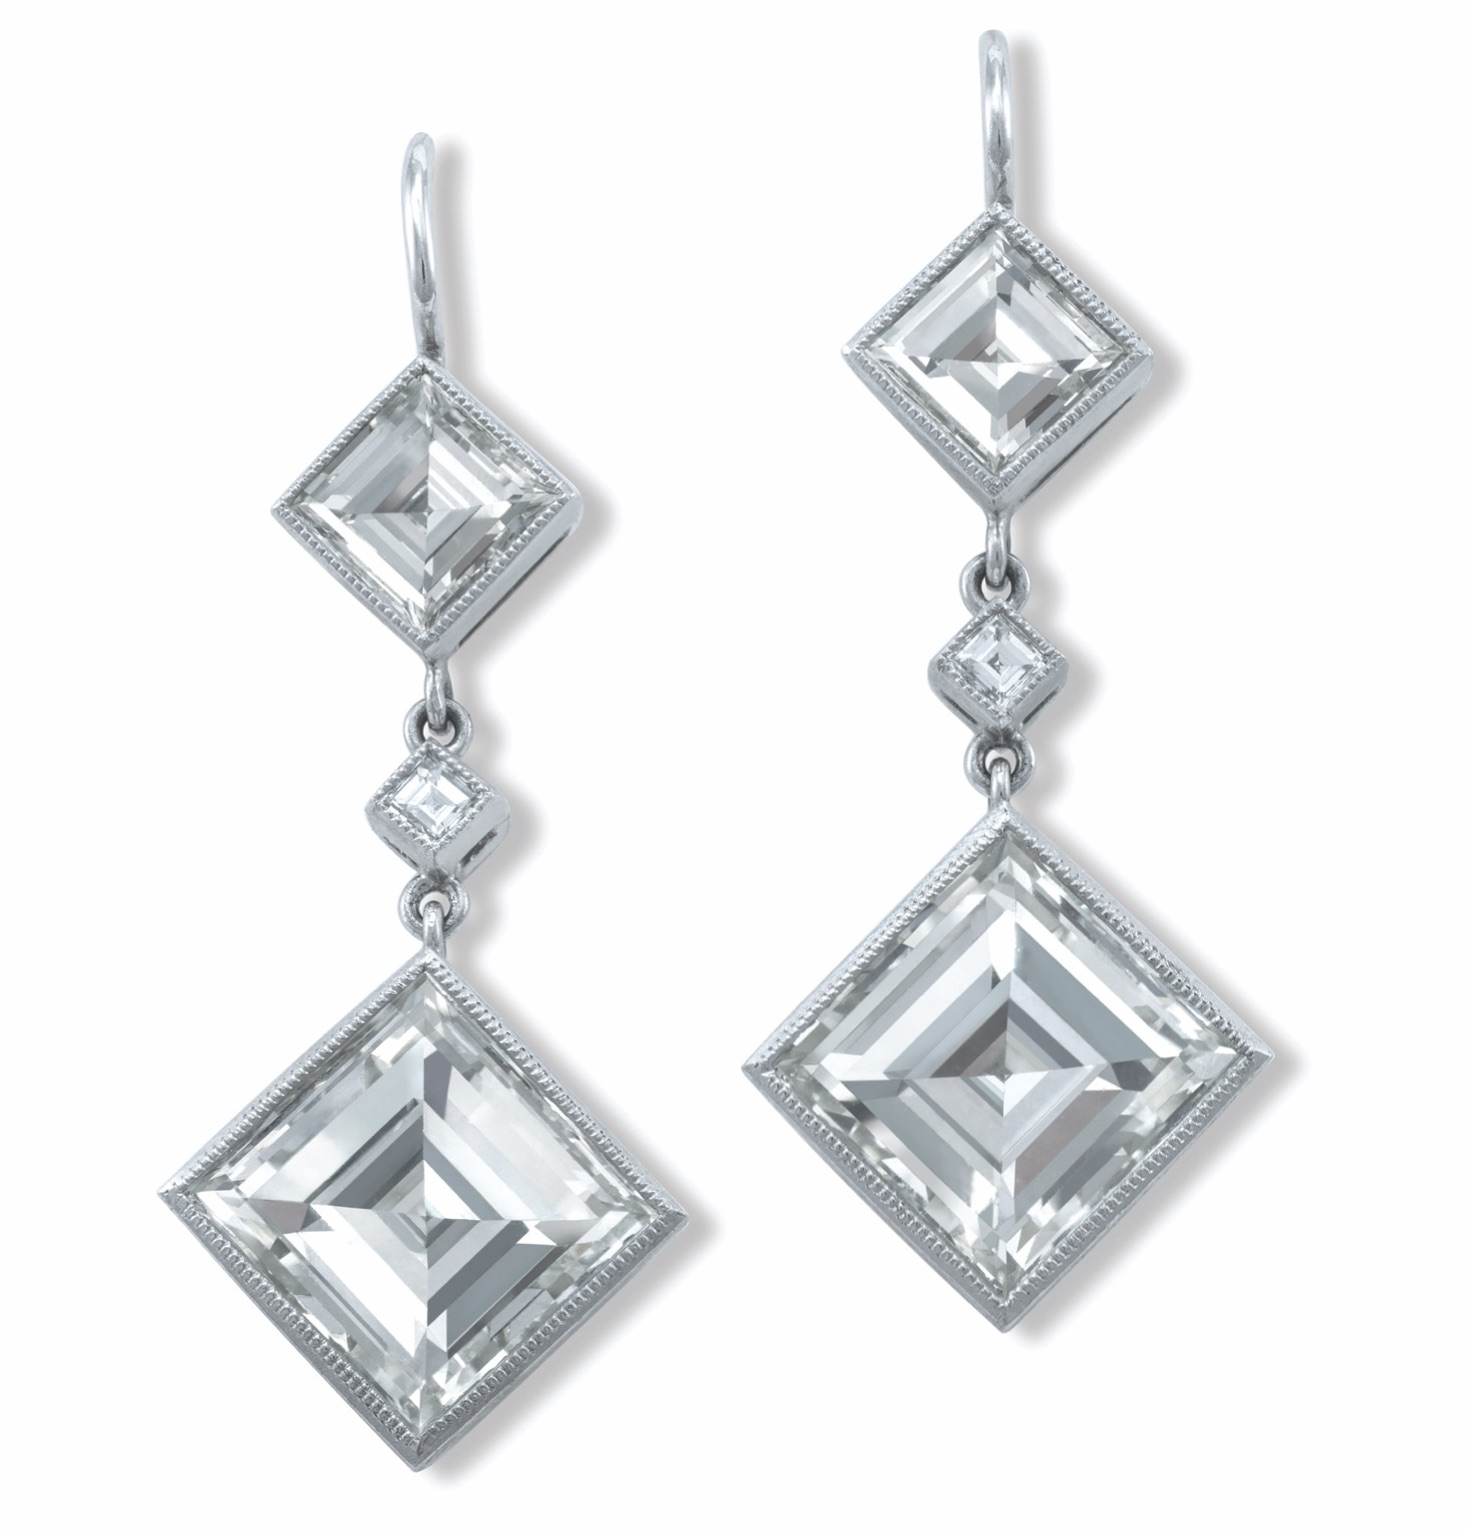 John Buechner diamond drop earrings | JCK On Your Market